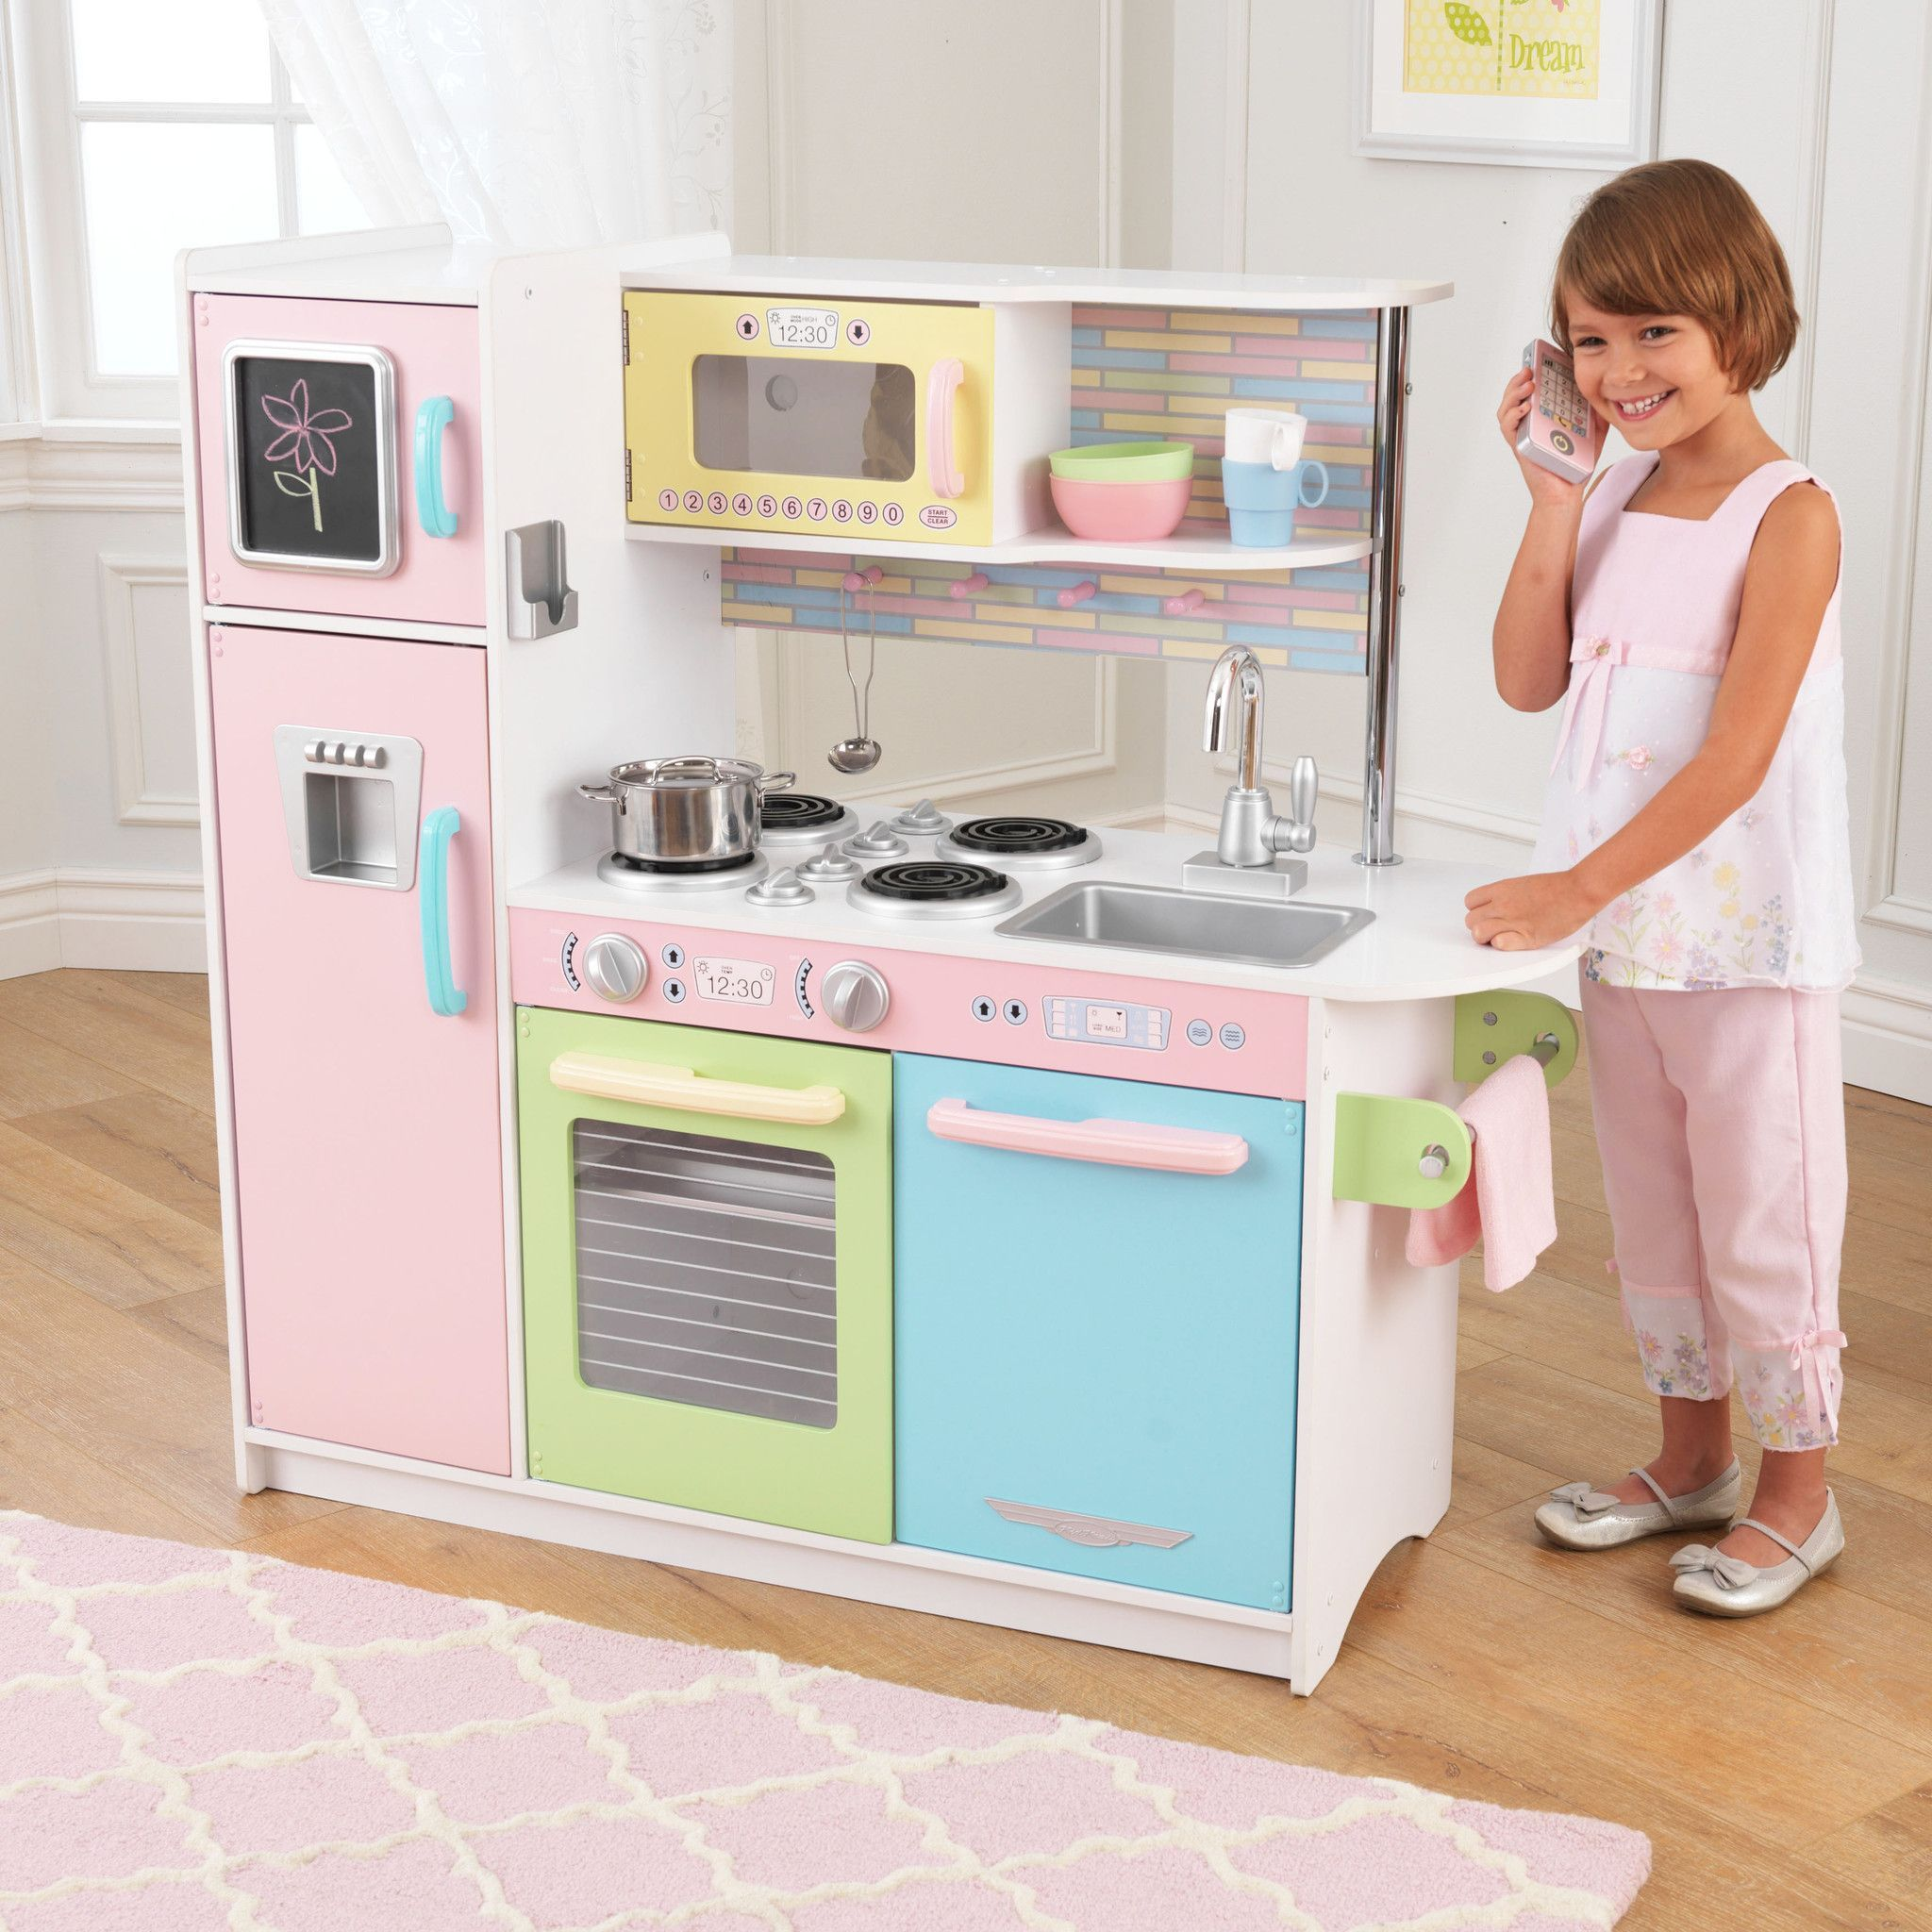 Kidkraft Minnie Mouse Küche Time To Cook Up A Little Fun Our Uptown Pastel Kitchen Has A Hip